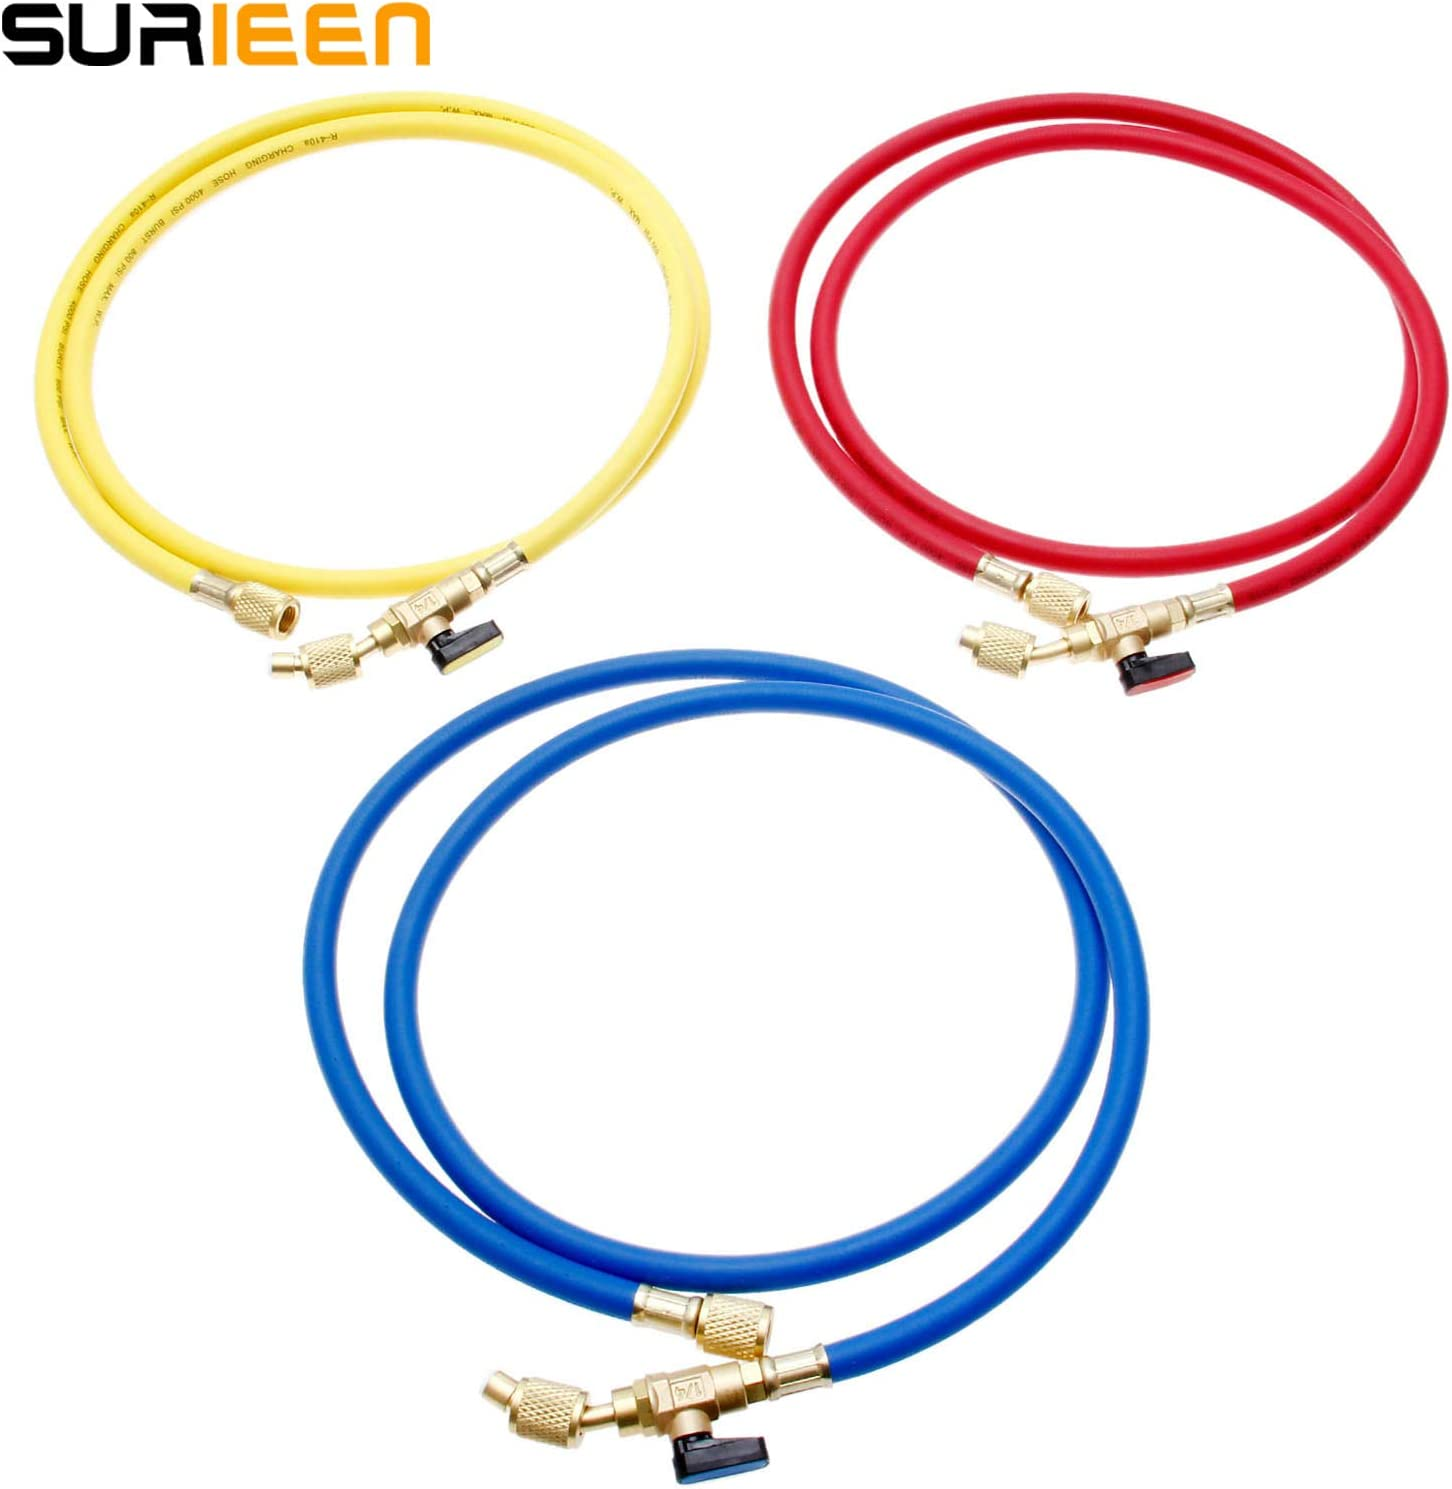 PSI Working Pressure 1//4 SAE x 1//4 SAE Thread 60 3 Colors R134A A//C Charging Hose Set with Shut-off Ball Valve, Fits for HVAC Air Condition R410A R12 R22 R502 R404 Refrigerant Manifold 4000~800